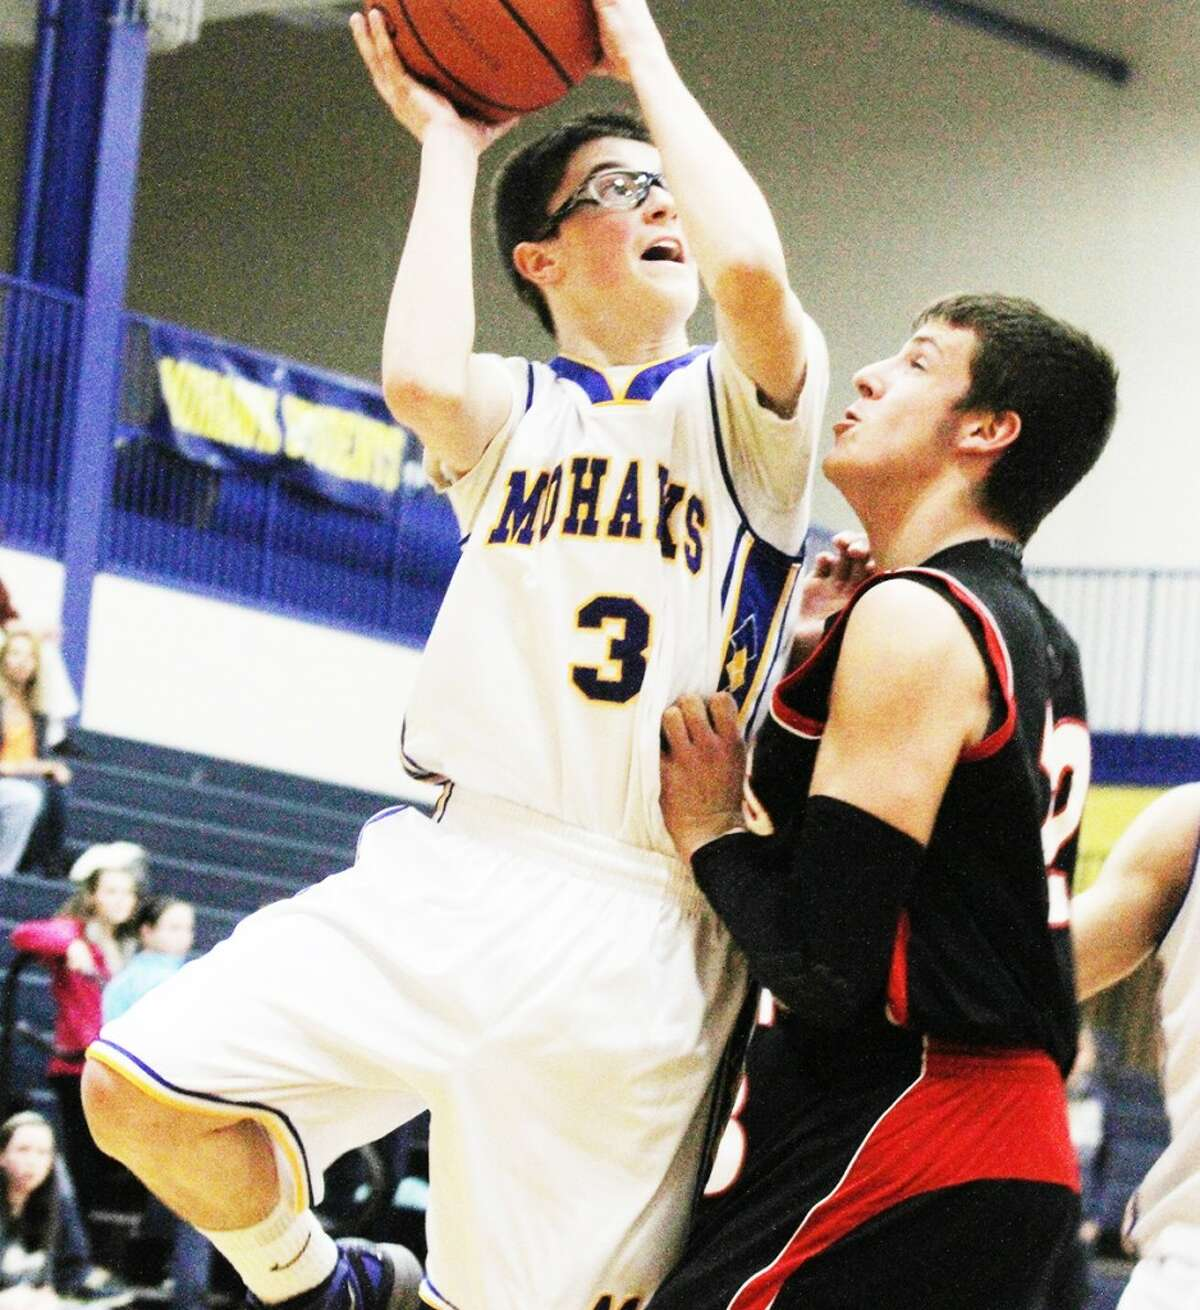 ROUGH GAME: Morley Stanwood's Tim Cairndruff (left) drives to the basket while being defended by Kyle Wright of Reed City. (Herald Review photo/Bob Allan)